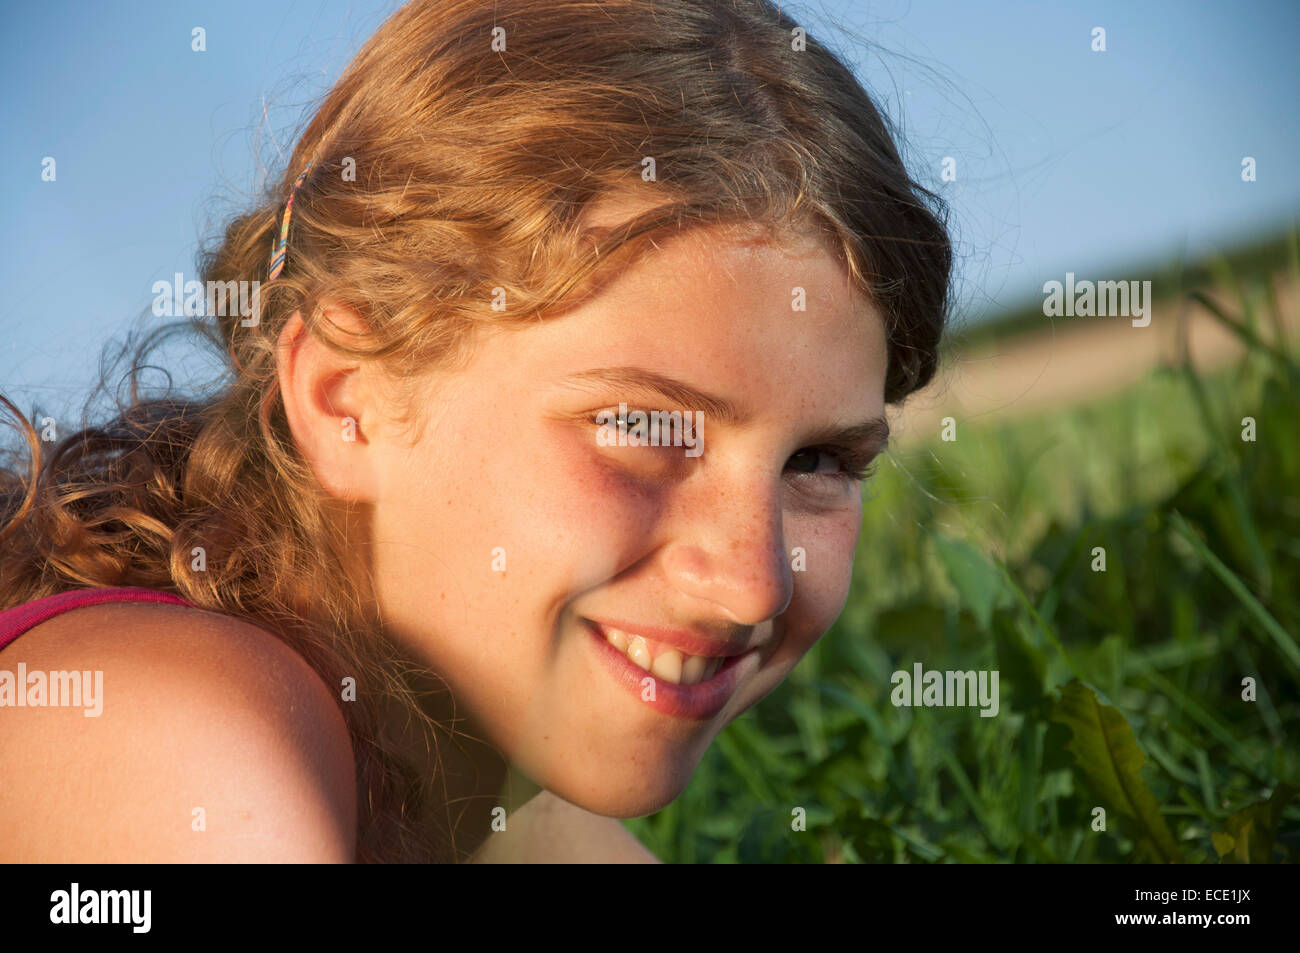 Portrait of a Girl (12-13) in field, close-up Photo Stock